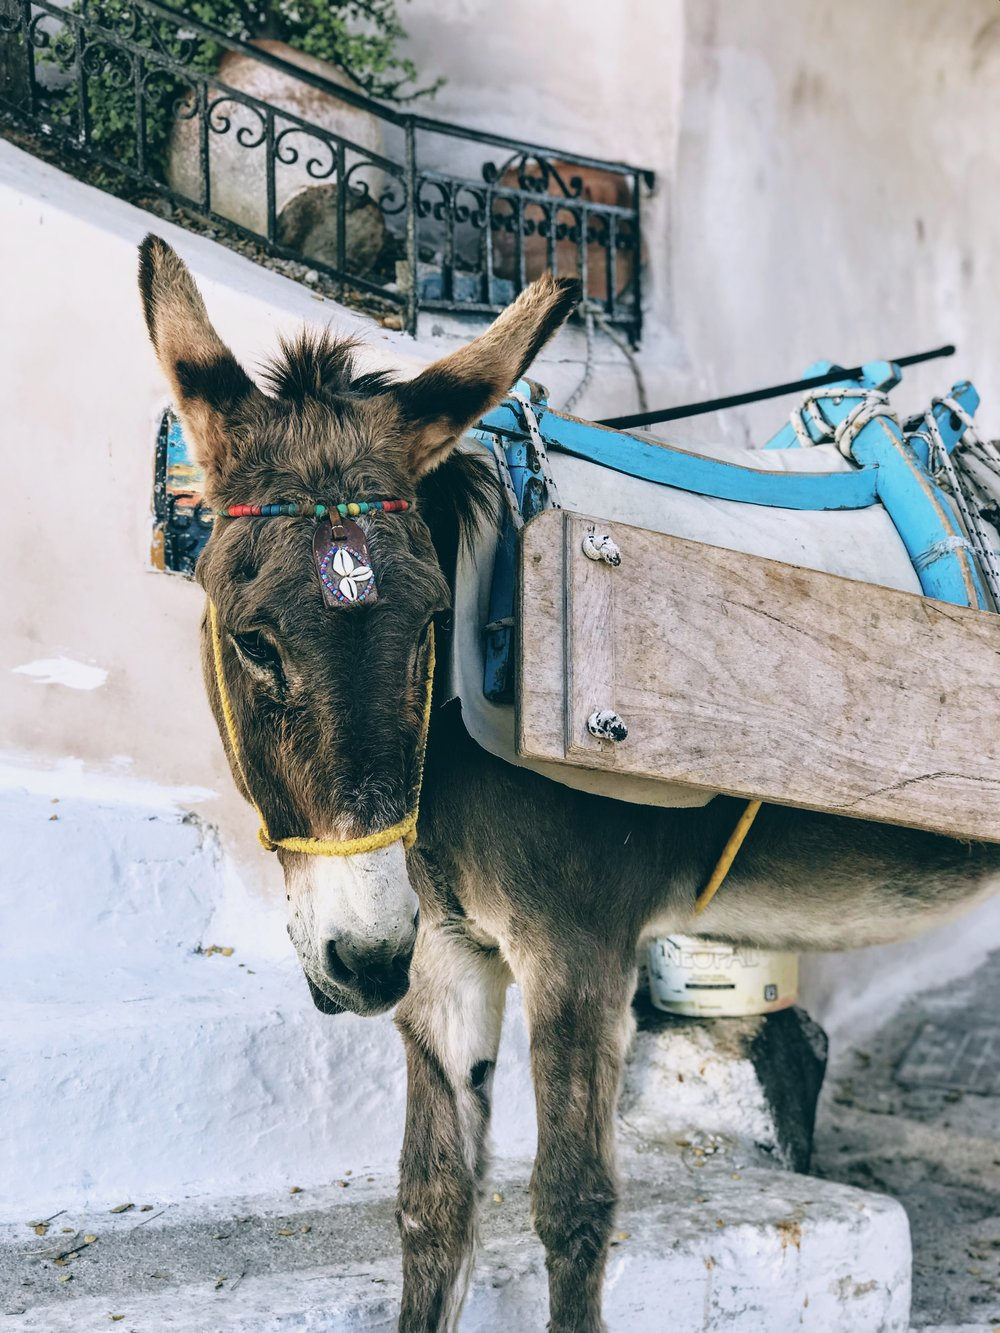 Donkey in the village of Pyrgos